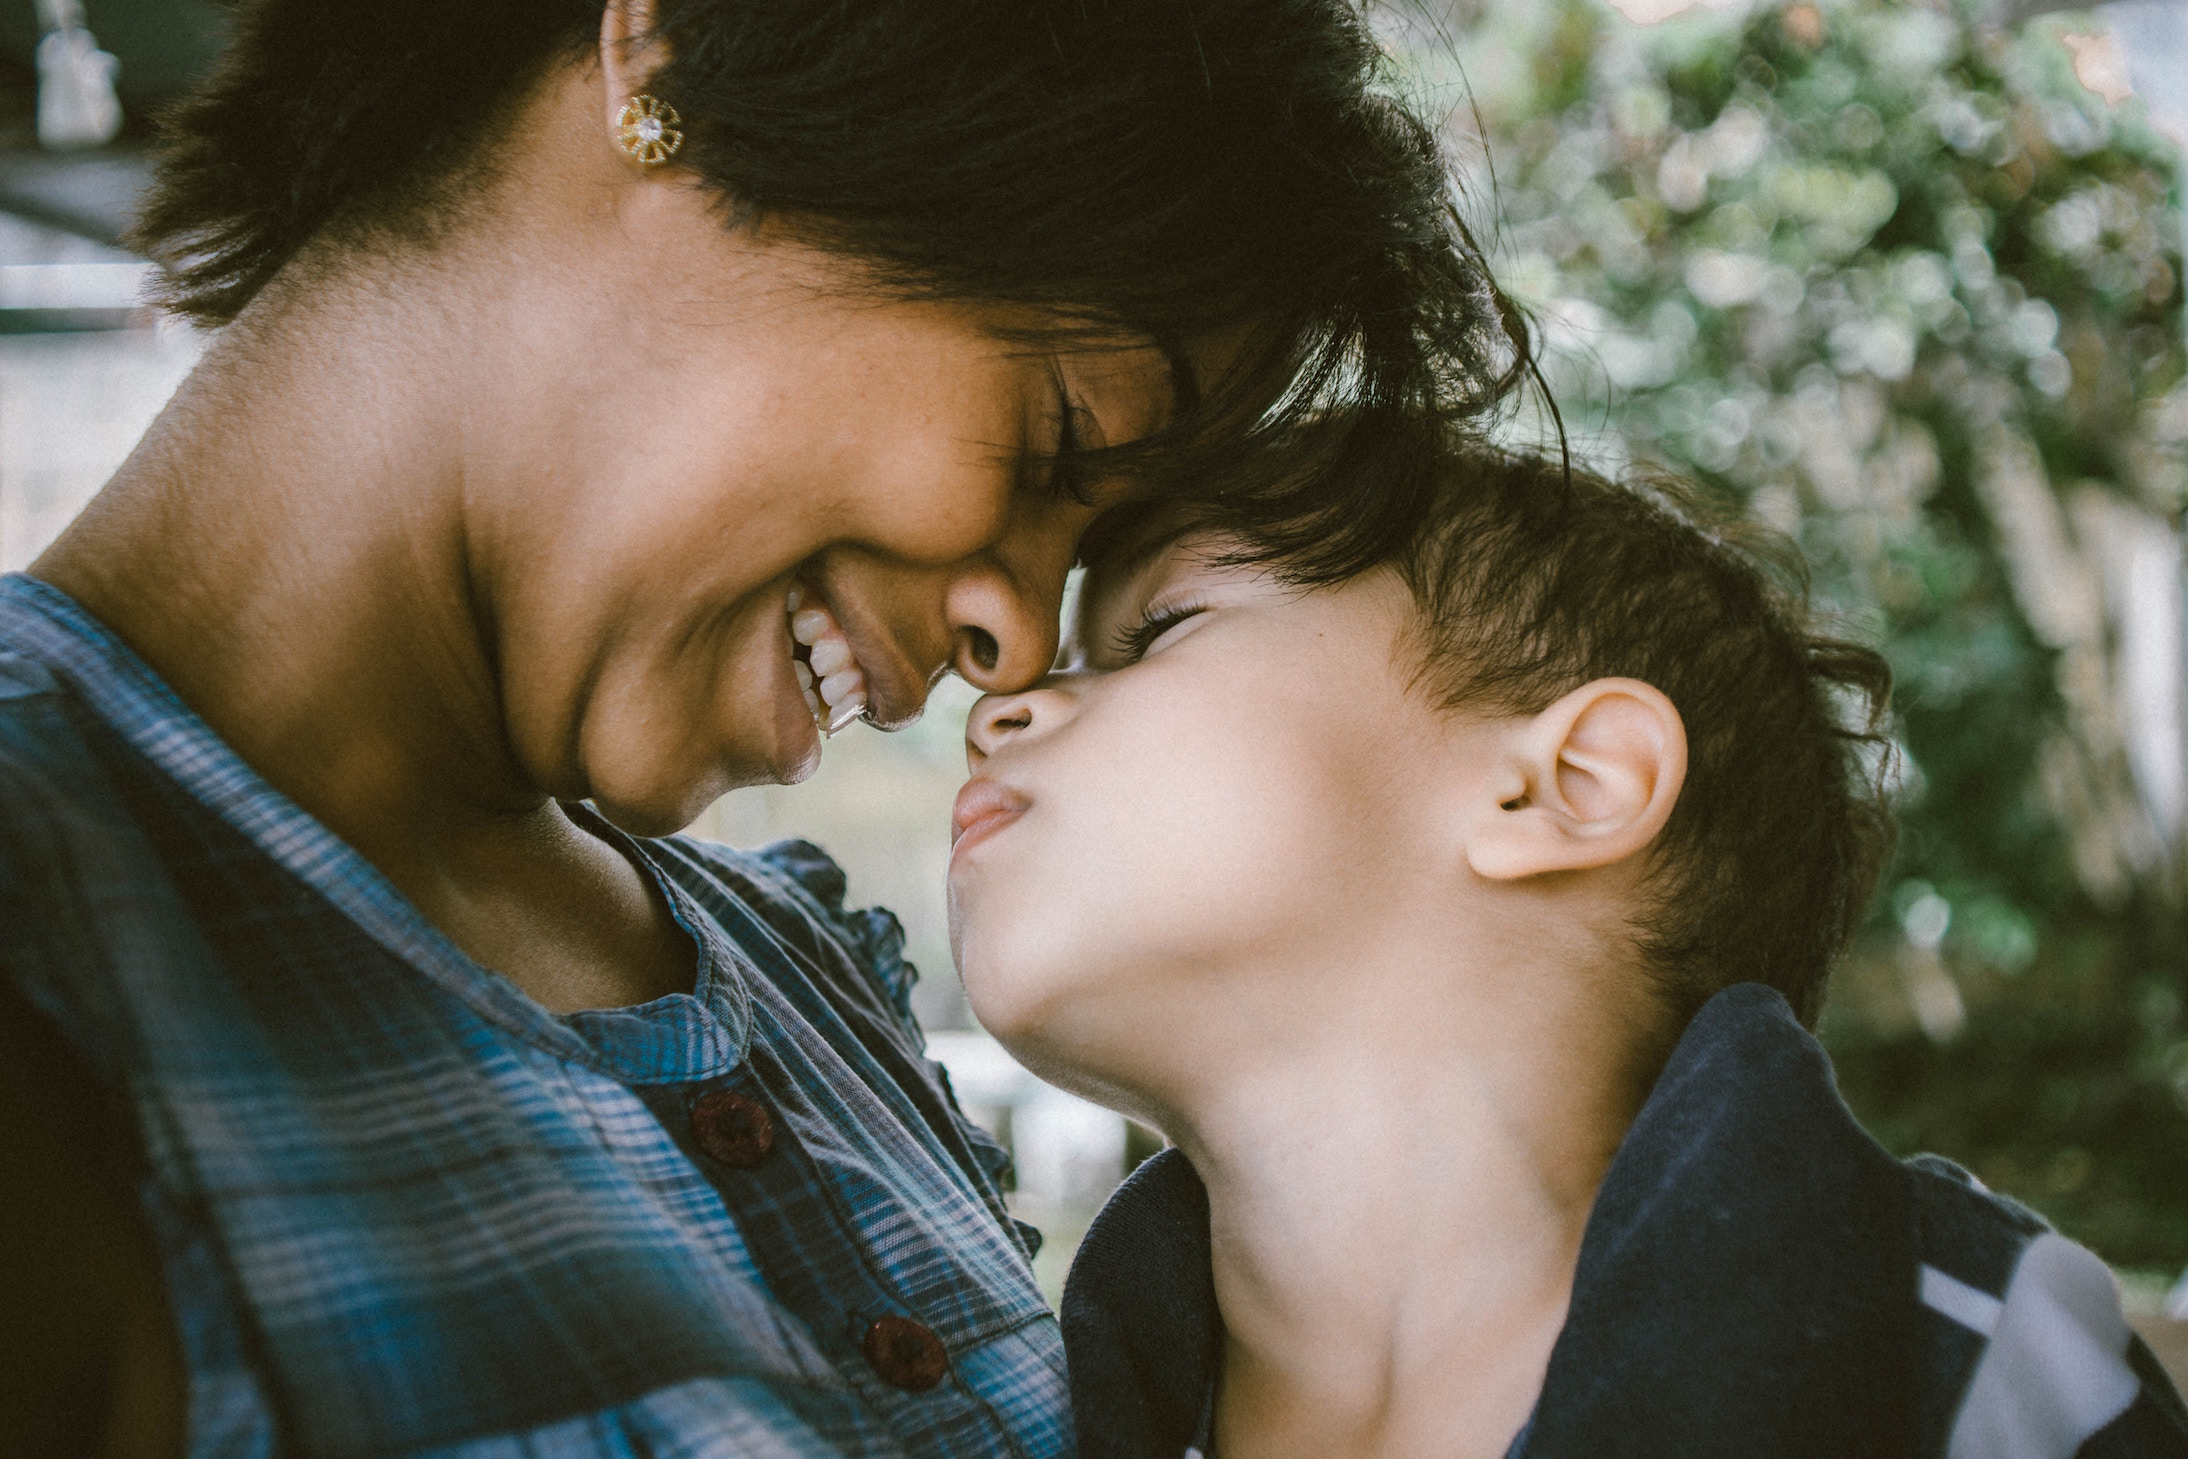 Experts at the New York University School of Medicine have found that maternal instincts may depend on a specific set of brain cell signals.